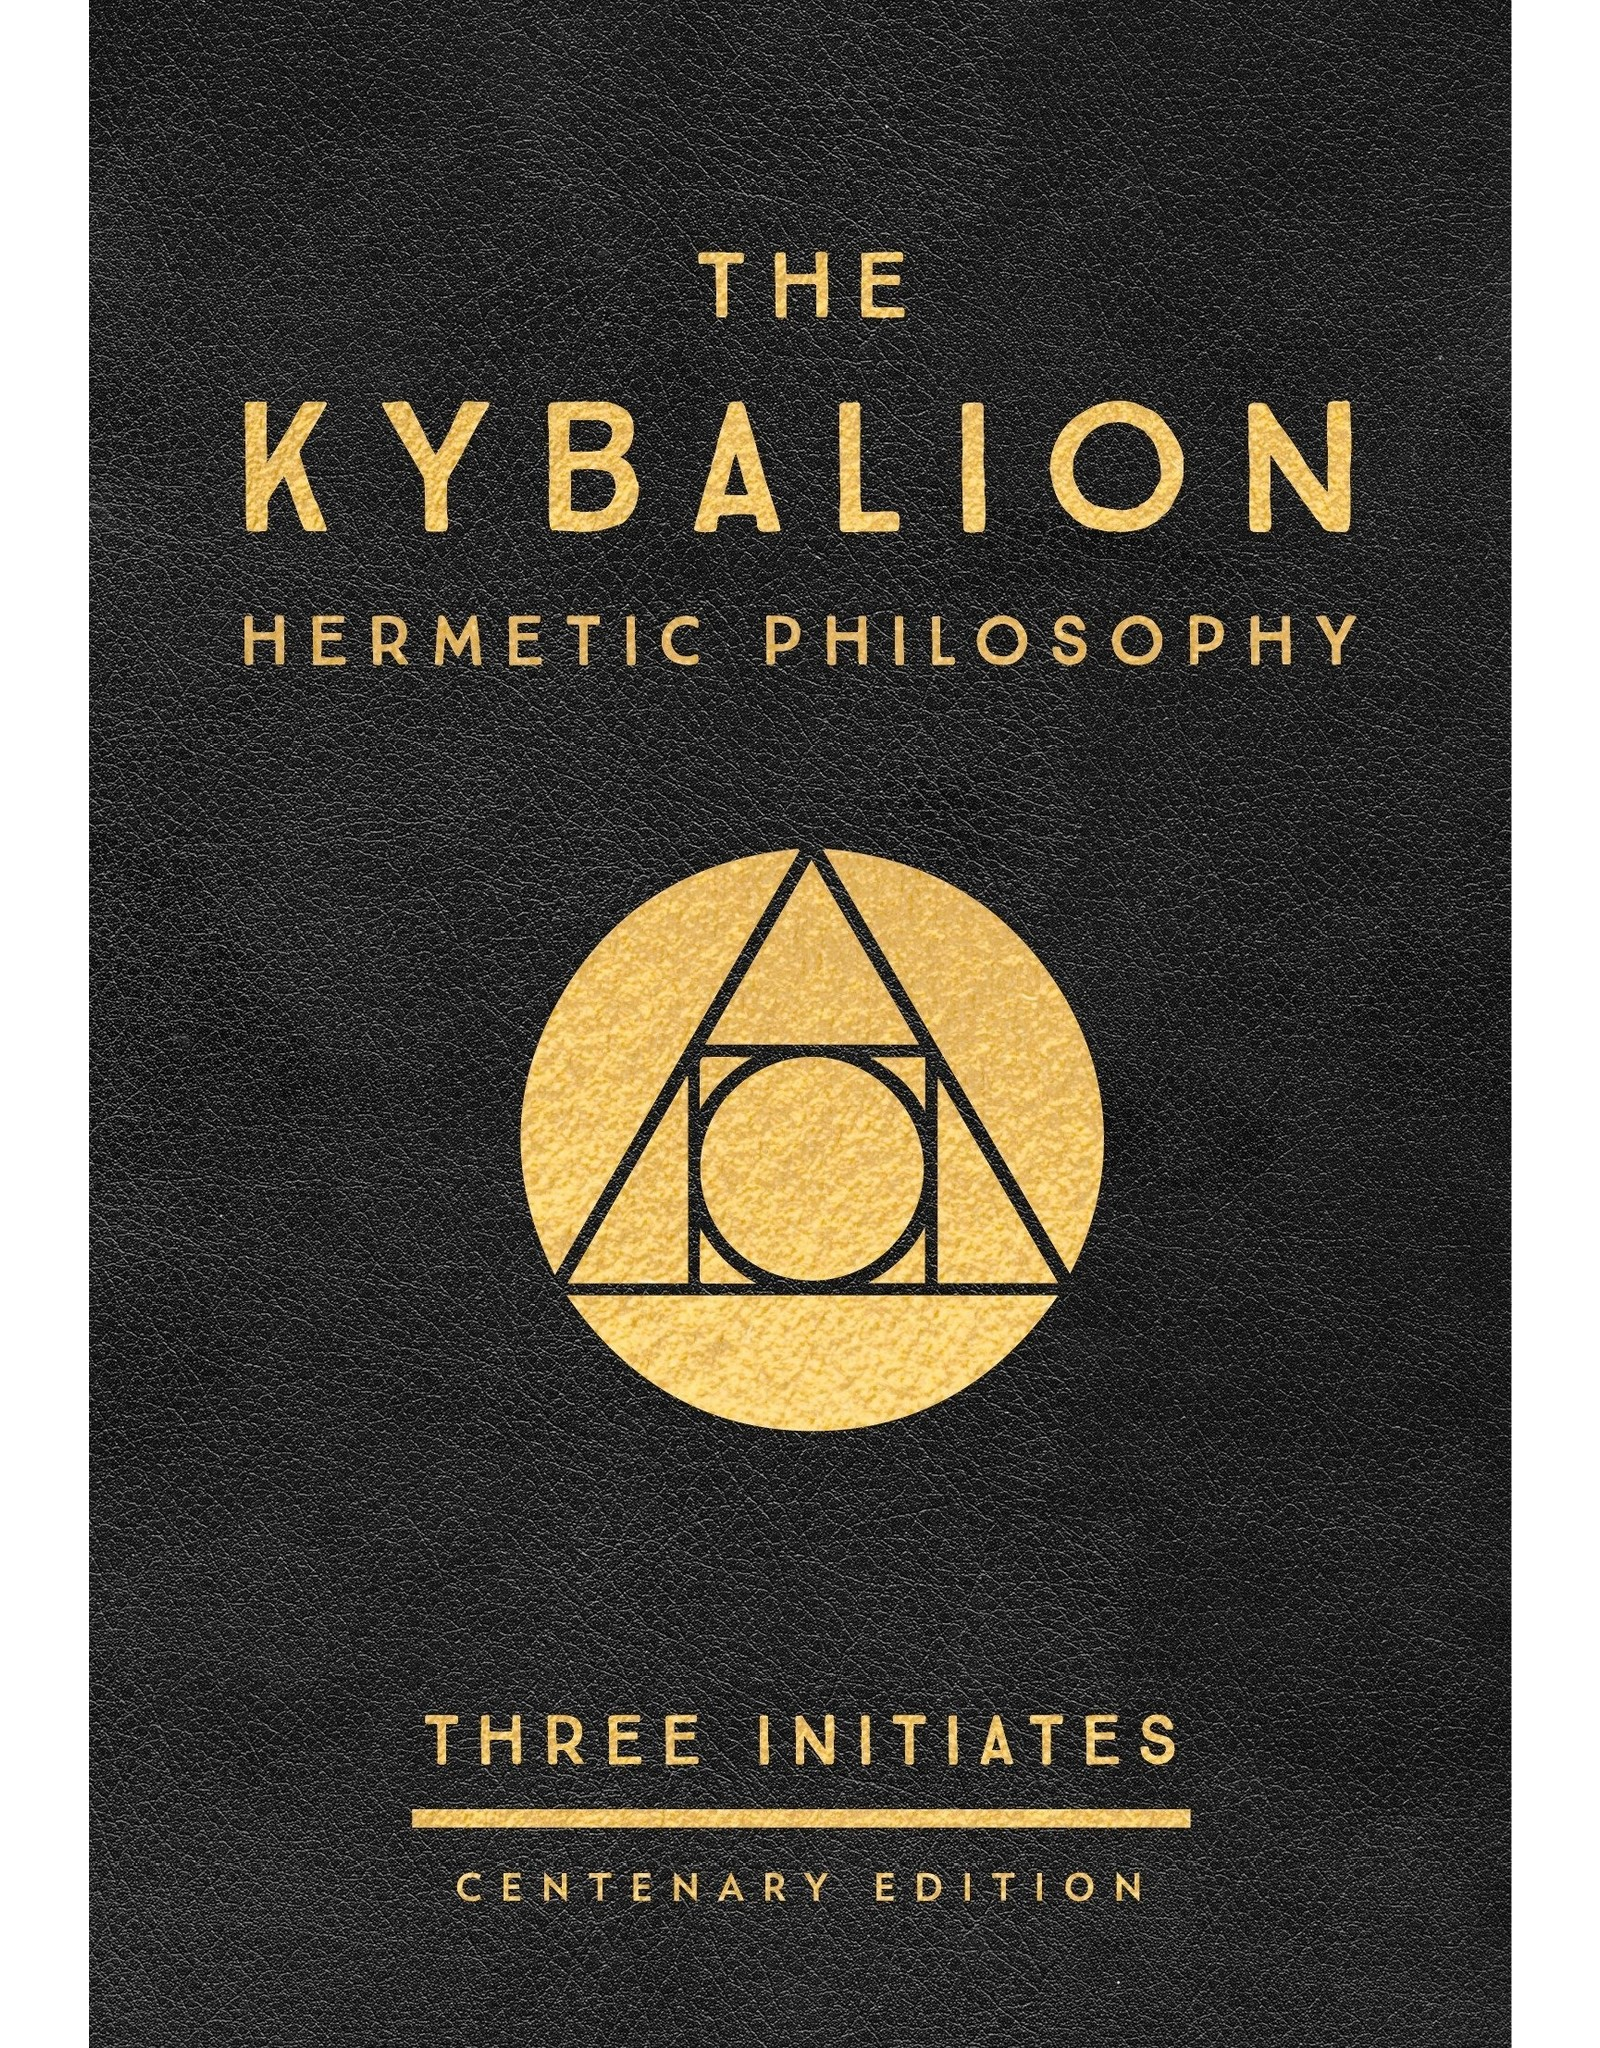 The Kabalion: Hermetic Philosophy